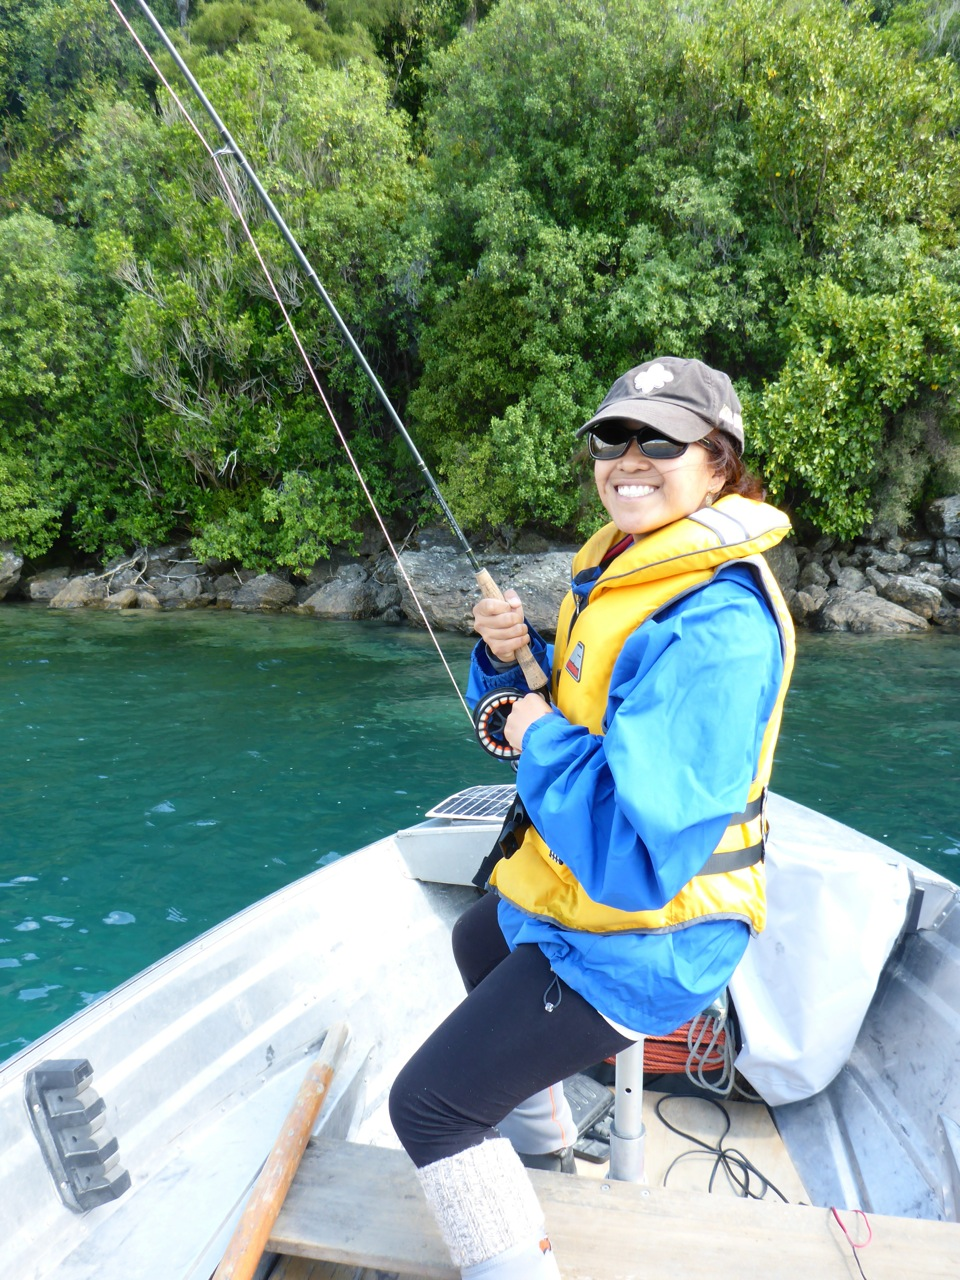 Lake Wakatipu cicada fishing can be fantastic! We had a good morning before the conditions changed for the worse. Iza got 4, I got 3!!